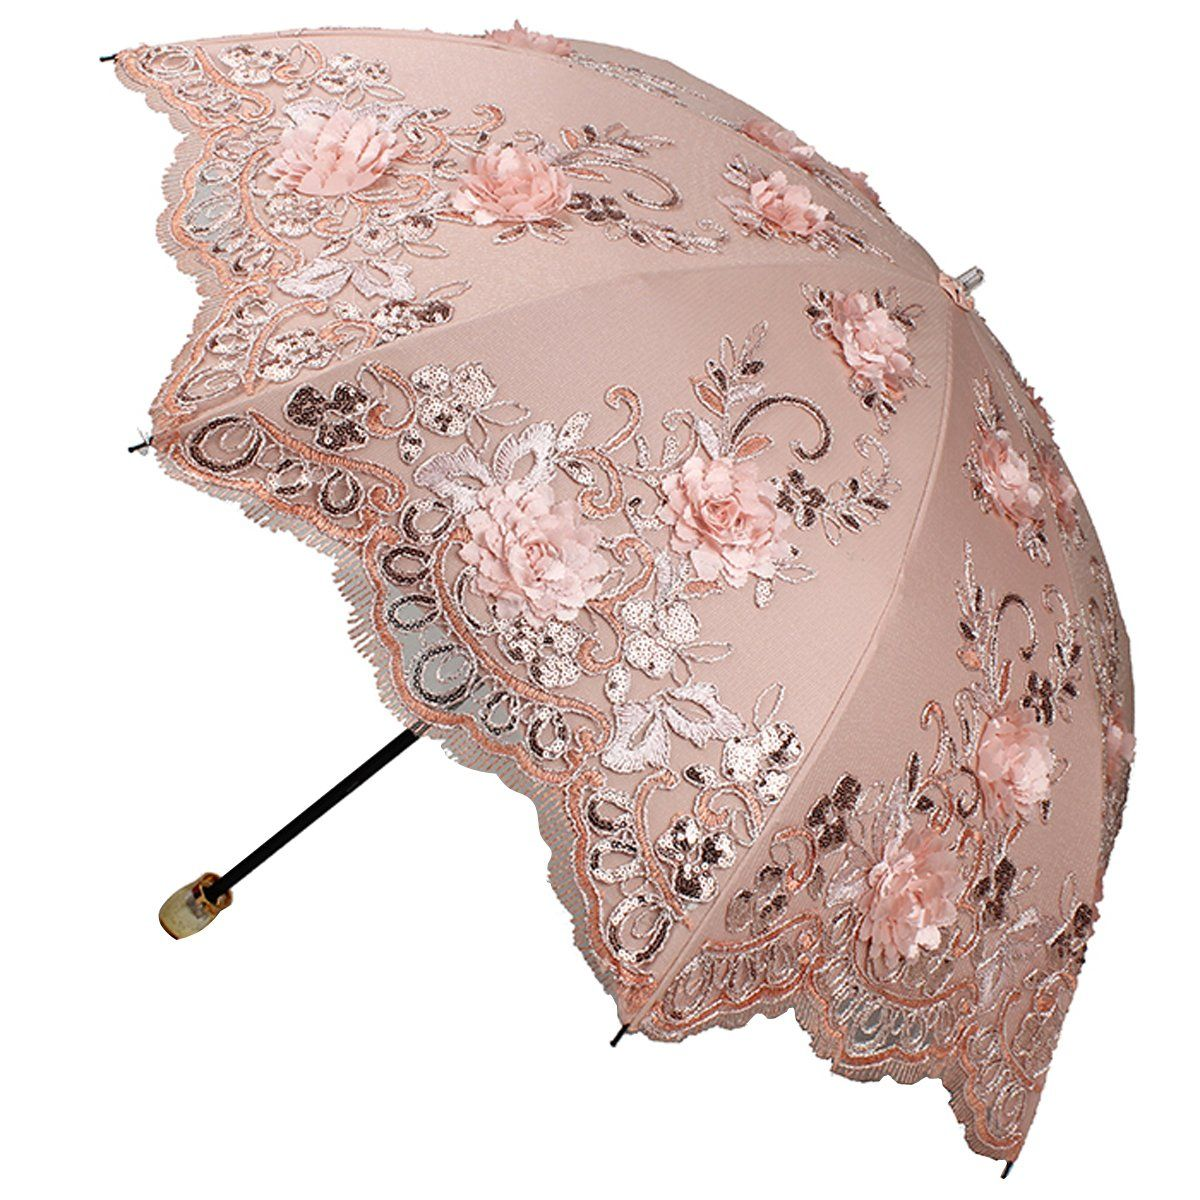 Sunny World Las Uv Protected Parasol Two Folding Anti Sun Umbrella Fashion Lace Embroidery Flowers Pink